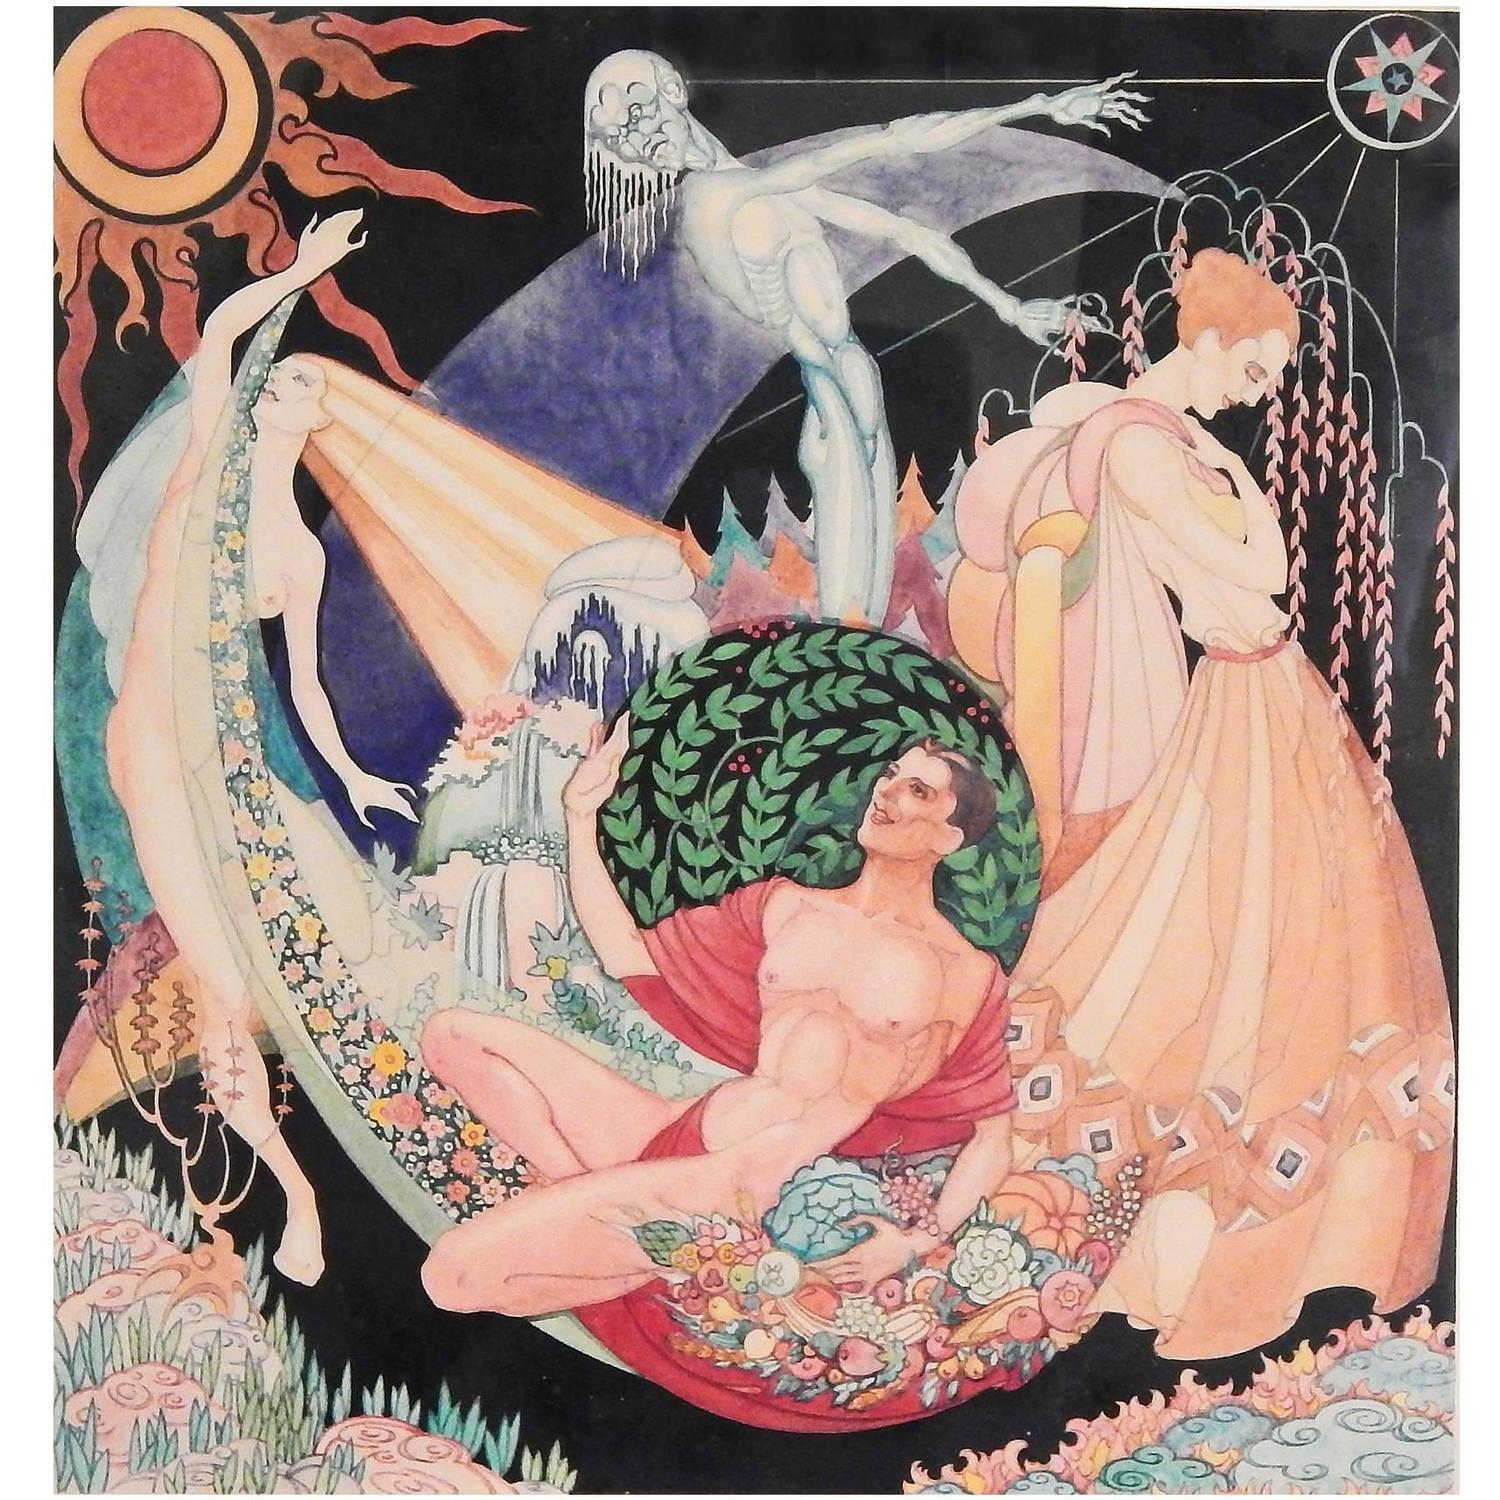 'The Four Seasons' by Max  Howard